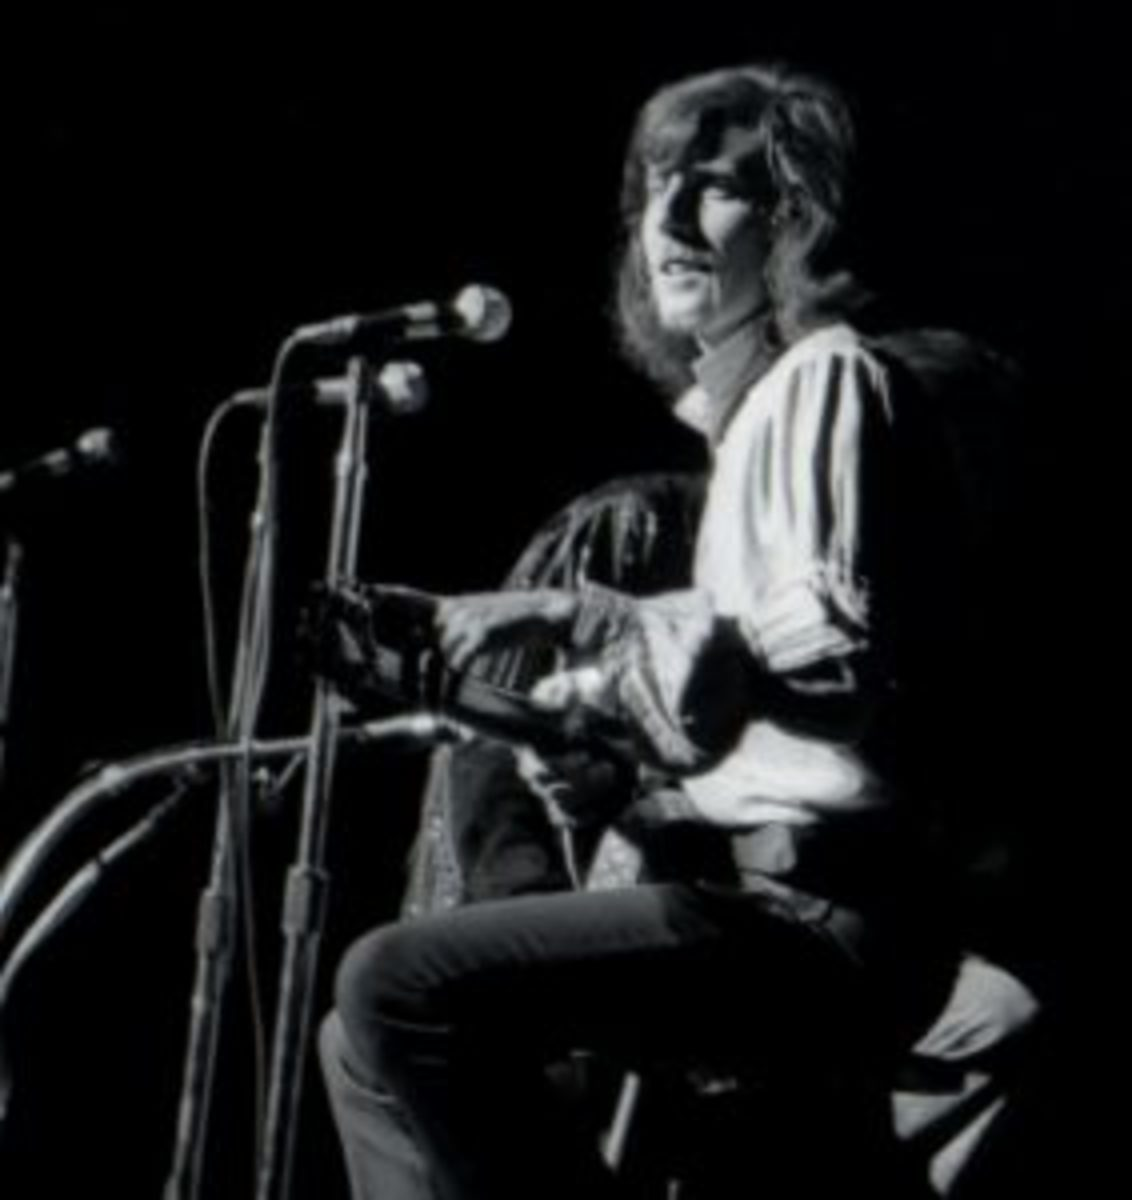 Graham Nash performing with CSNY in 1970 at the Fillmore East in New York City. (Photo by Jason Laure/Frank White Photo Agency)